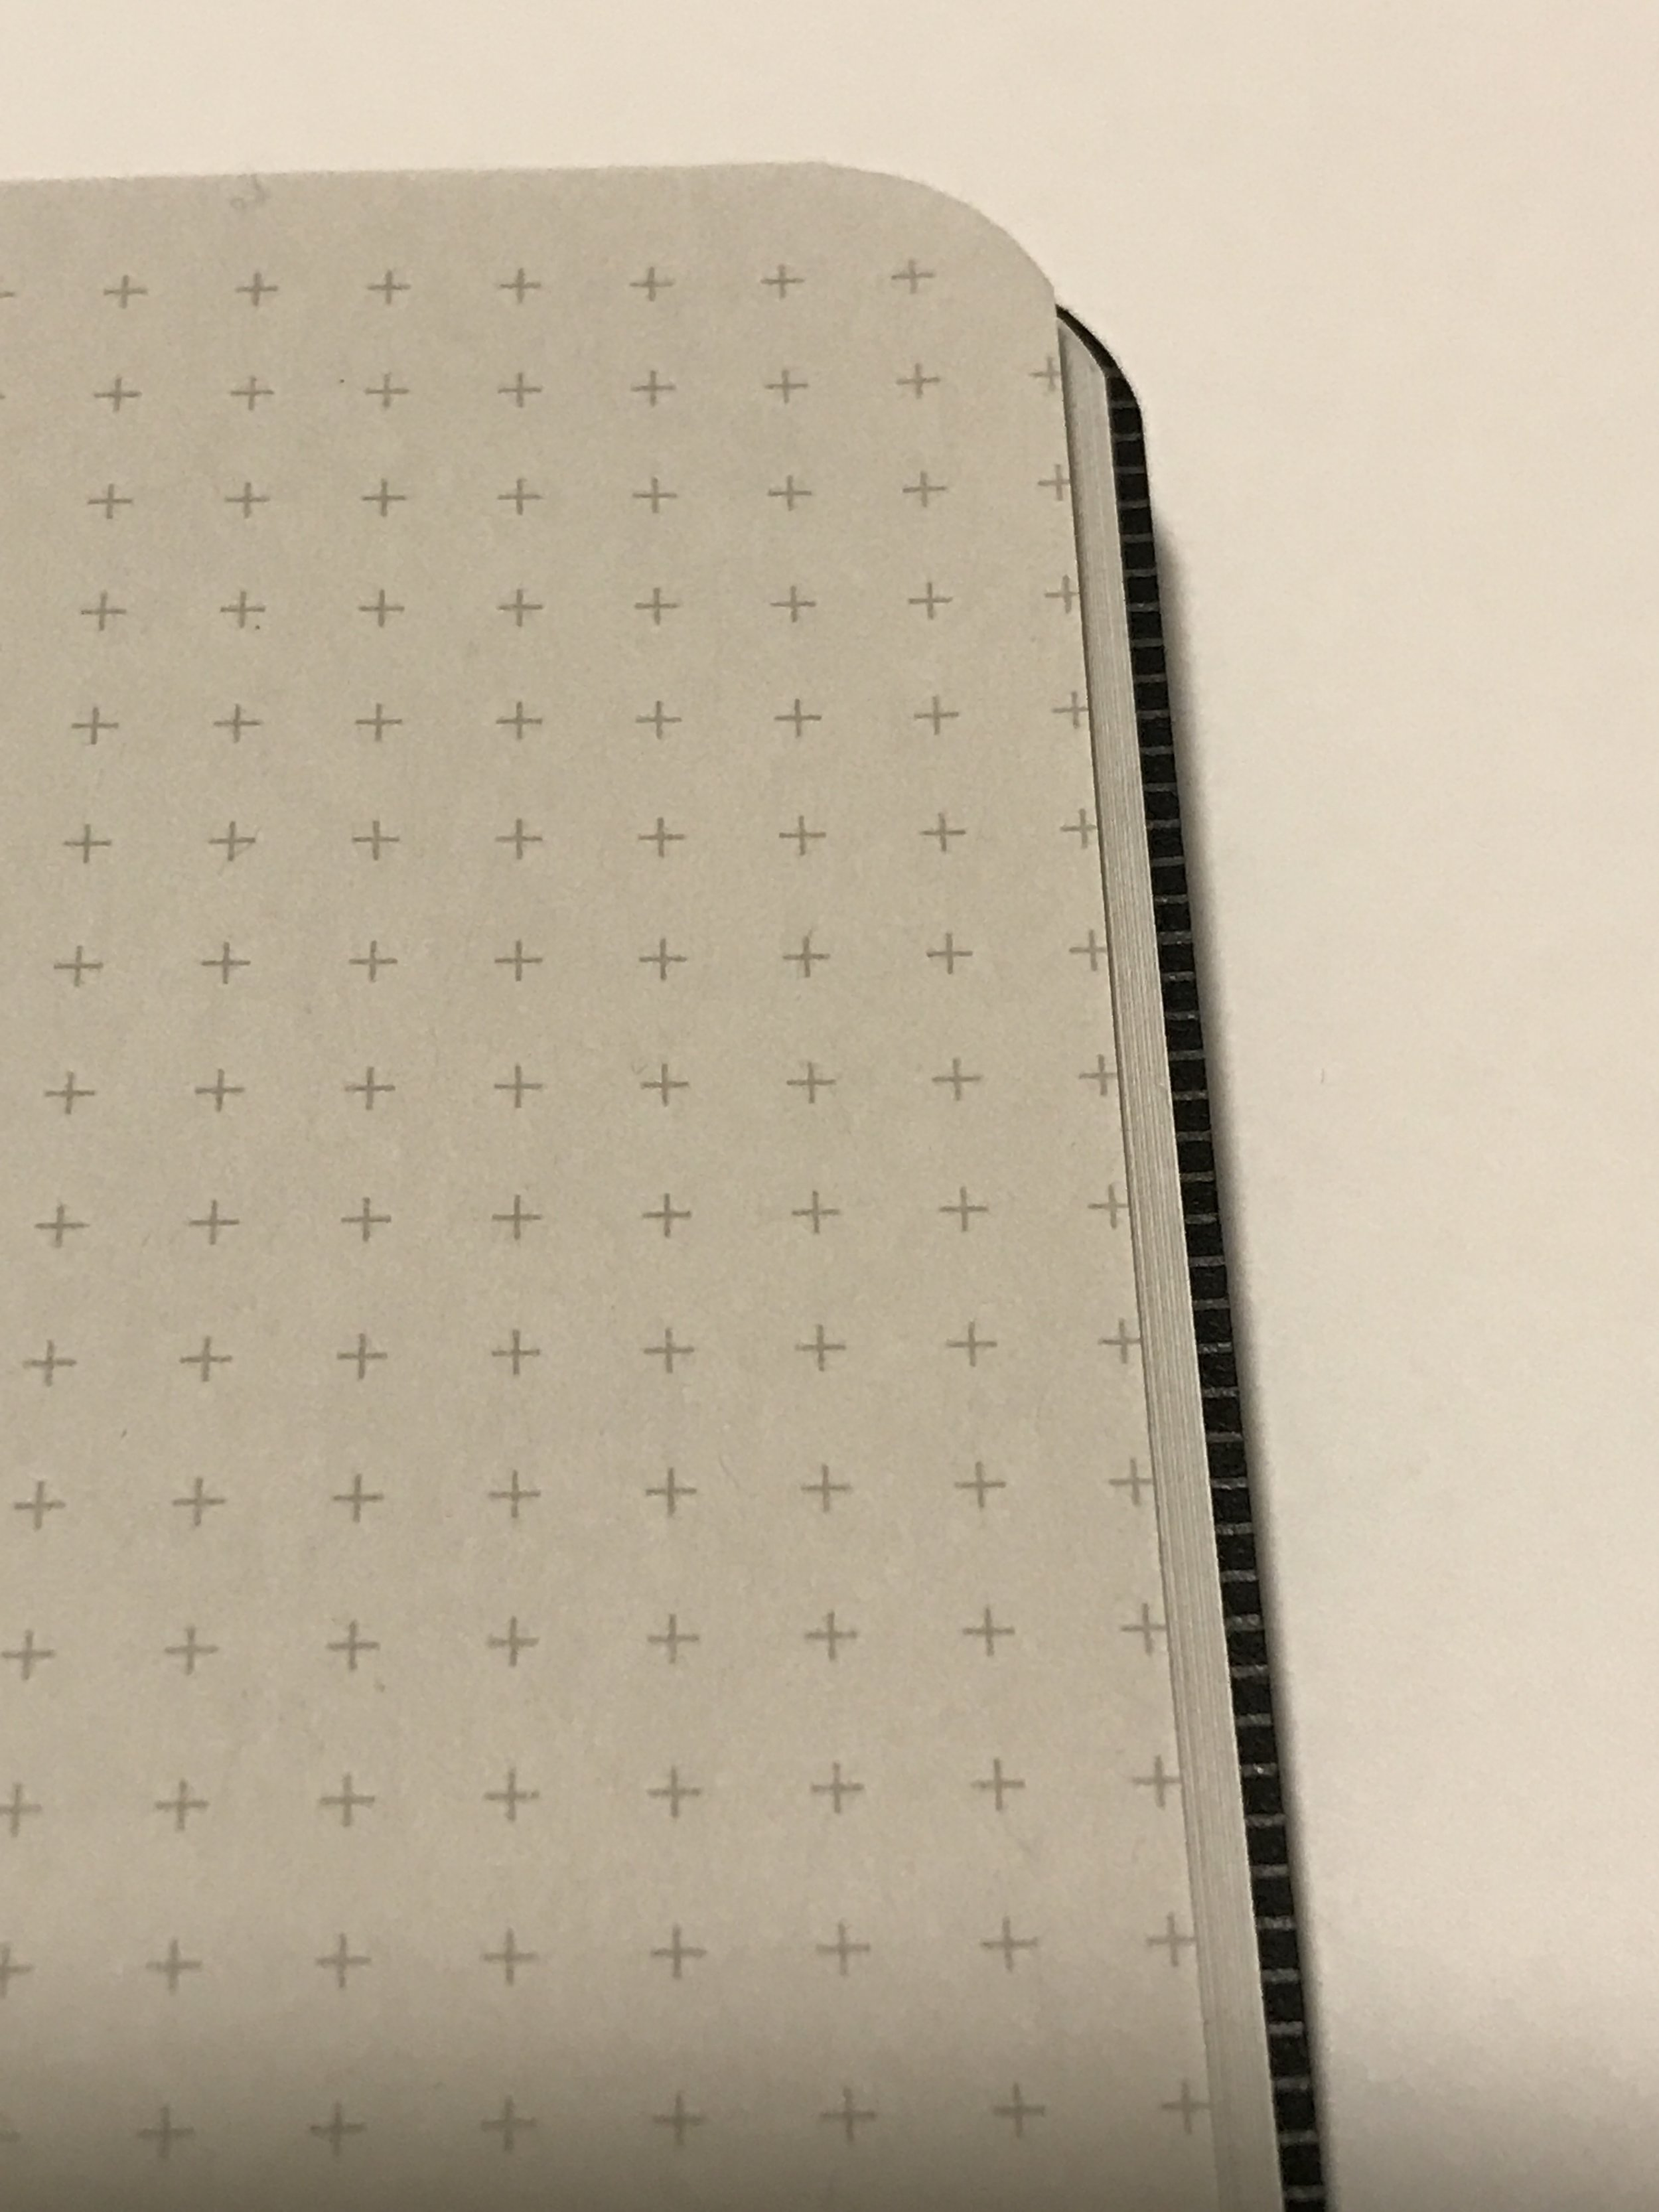 Just a dust of gray on the paper and a light gray for the grid.